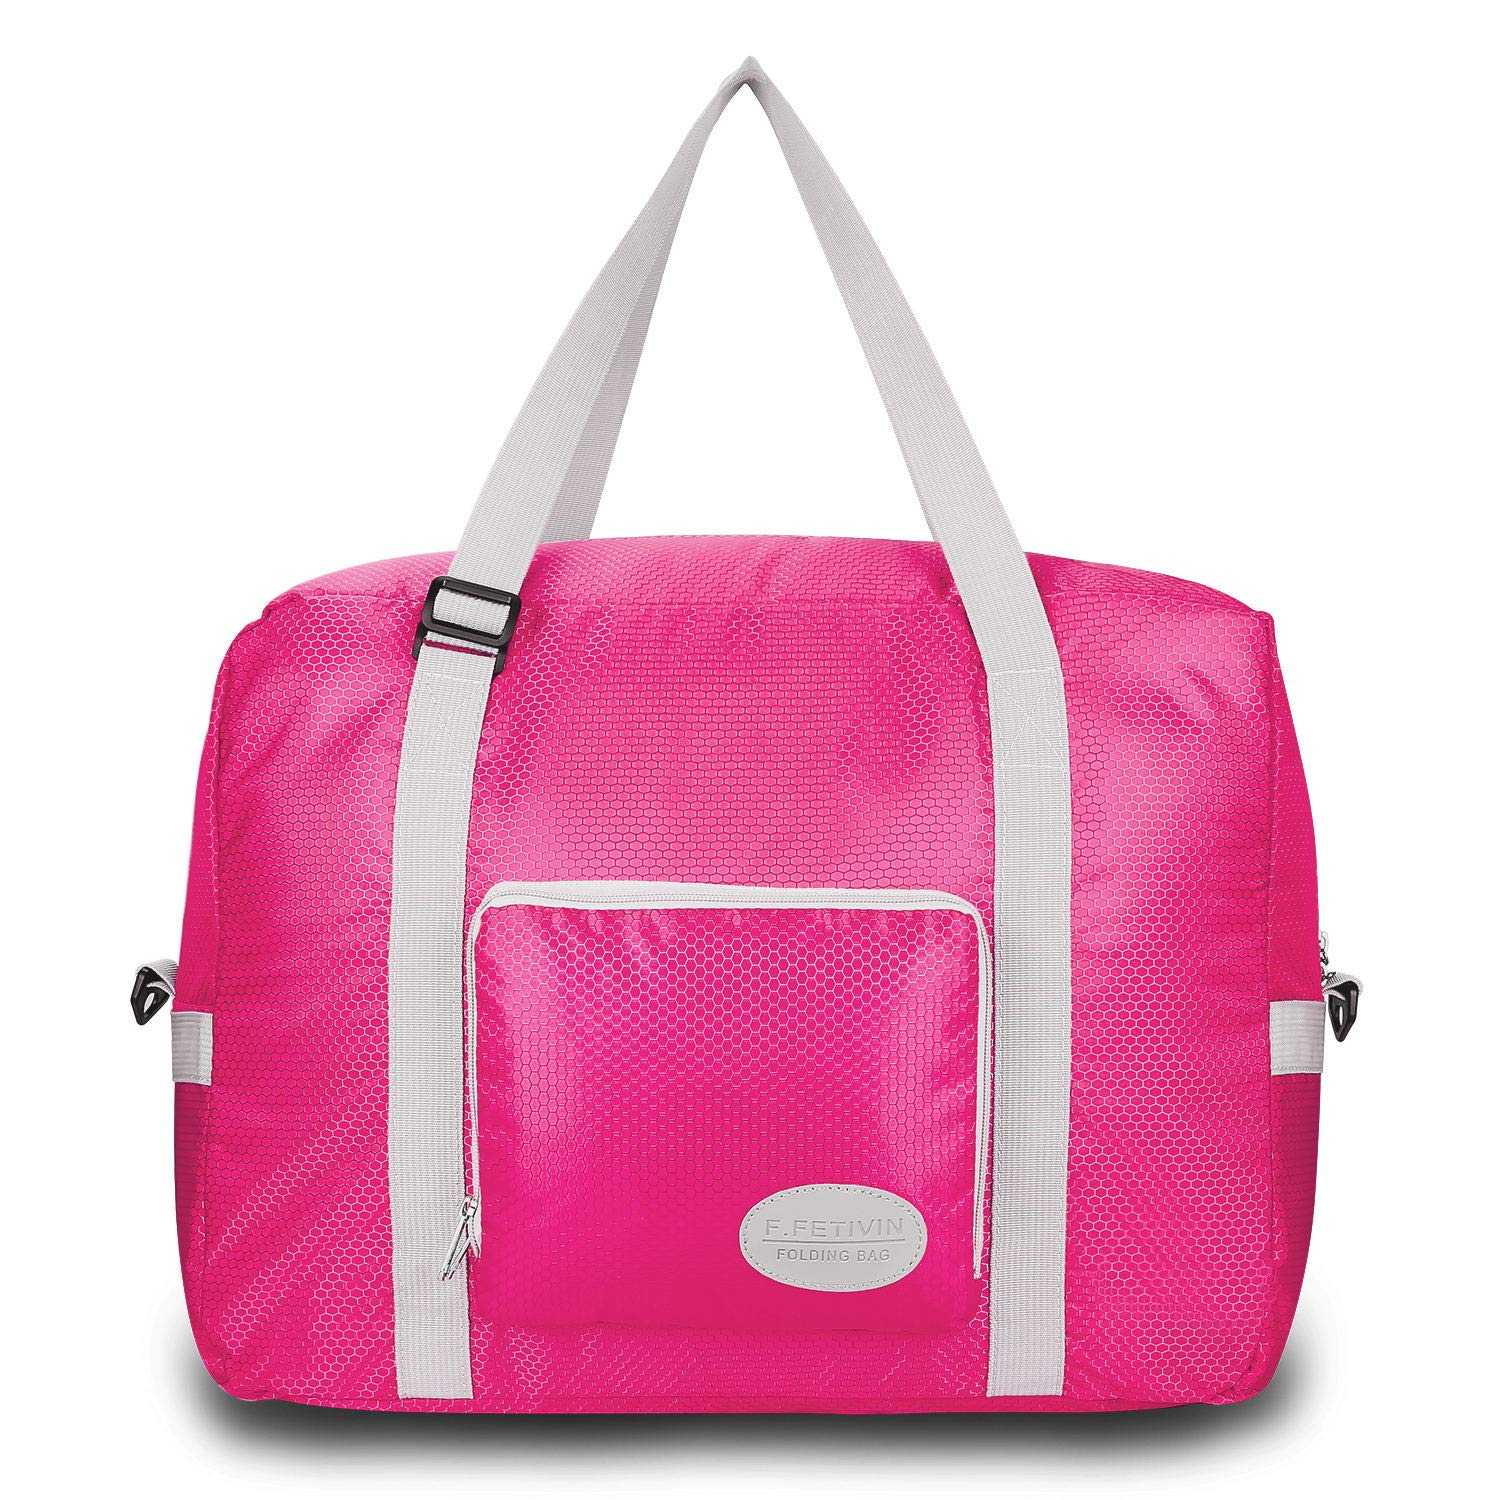 5ecc52274778 Foldable Duffel Bag For Women & Men - Lightweight Duffle For Luggage Gym  Sports (Pink)